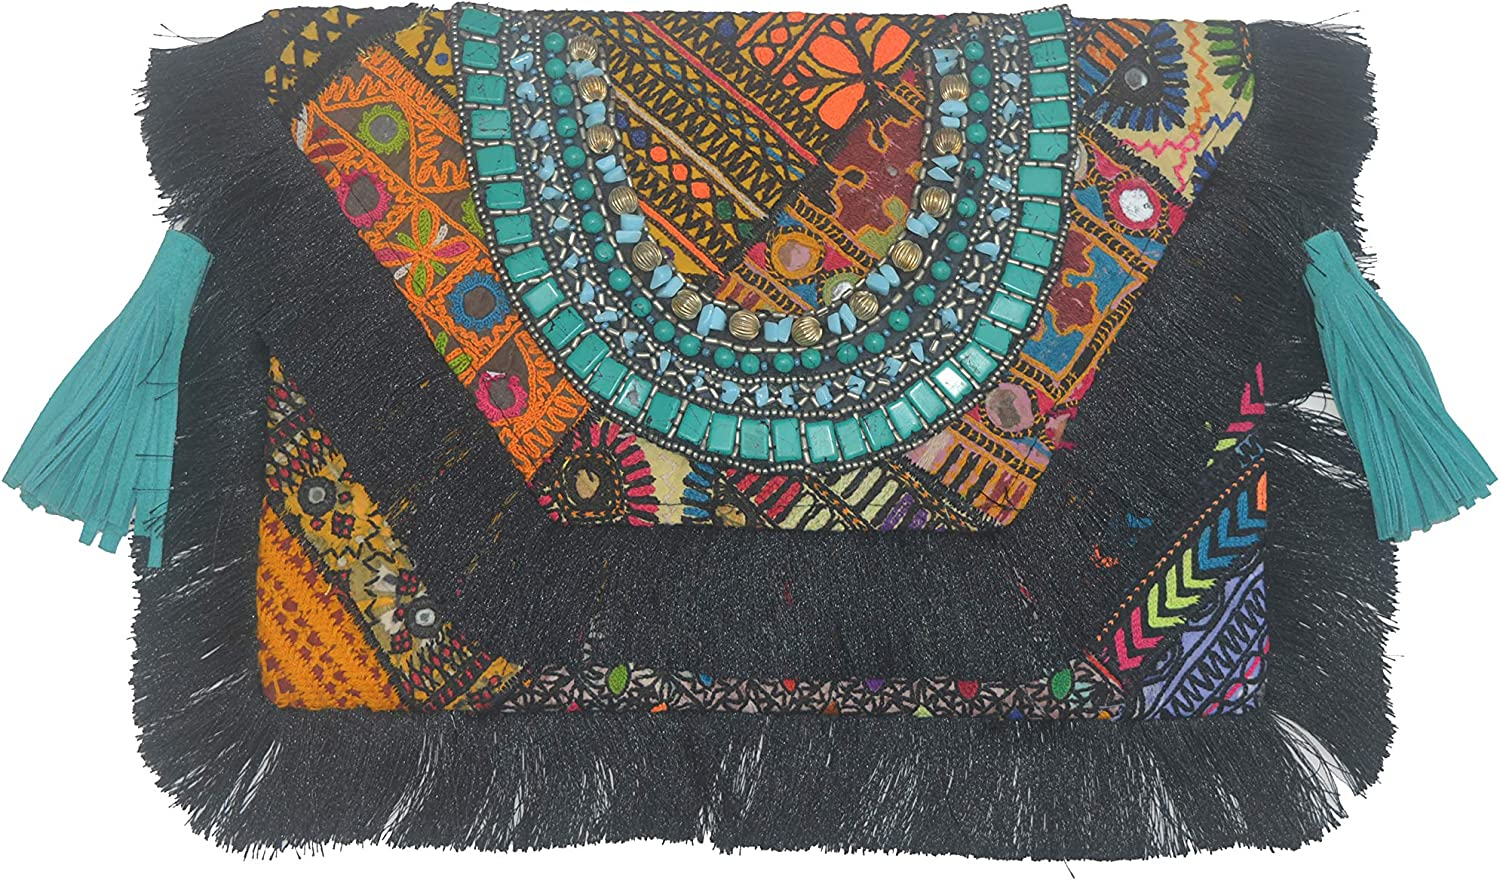 MATSAYA RECYCLED BANJARA FABRIC BOHO NECKLACE CLUTCH BAG BLACK 12 W X9 H.